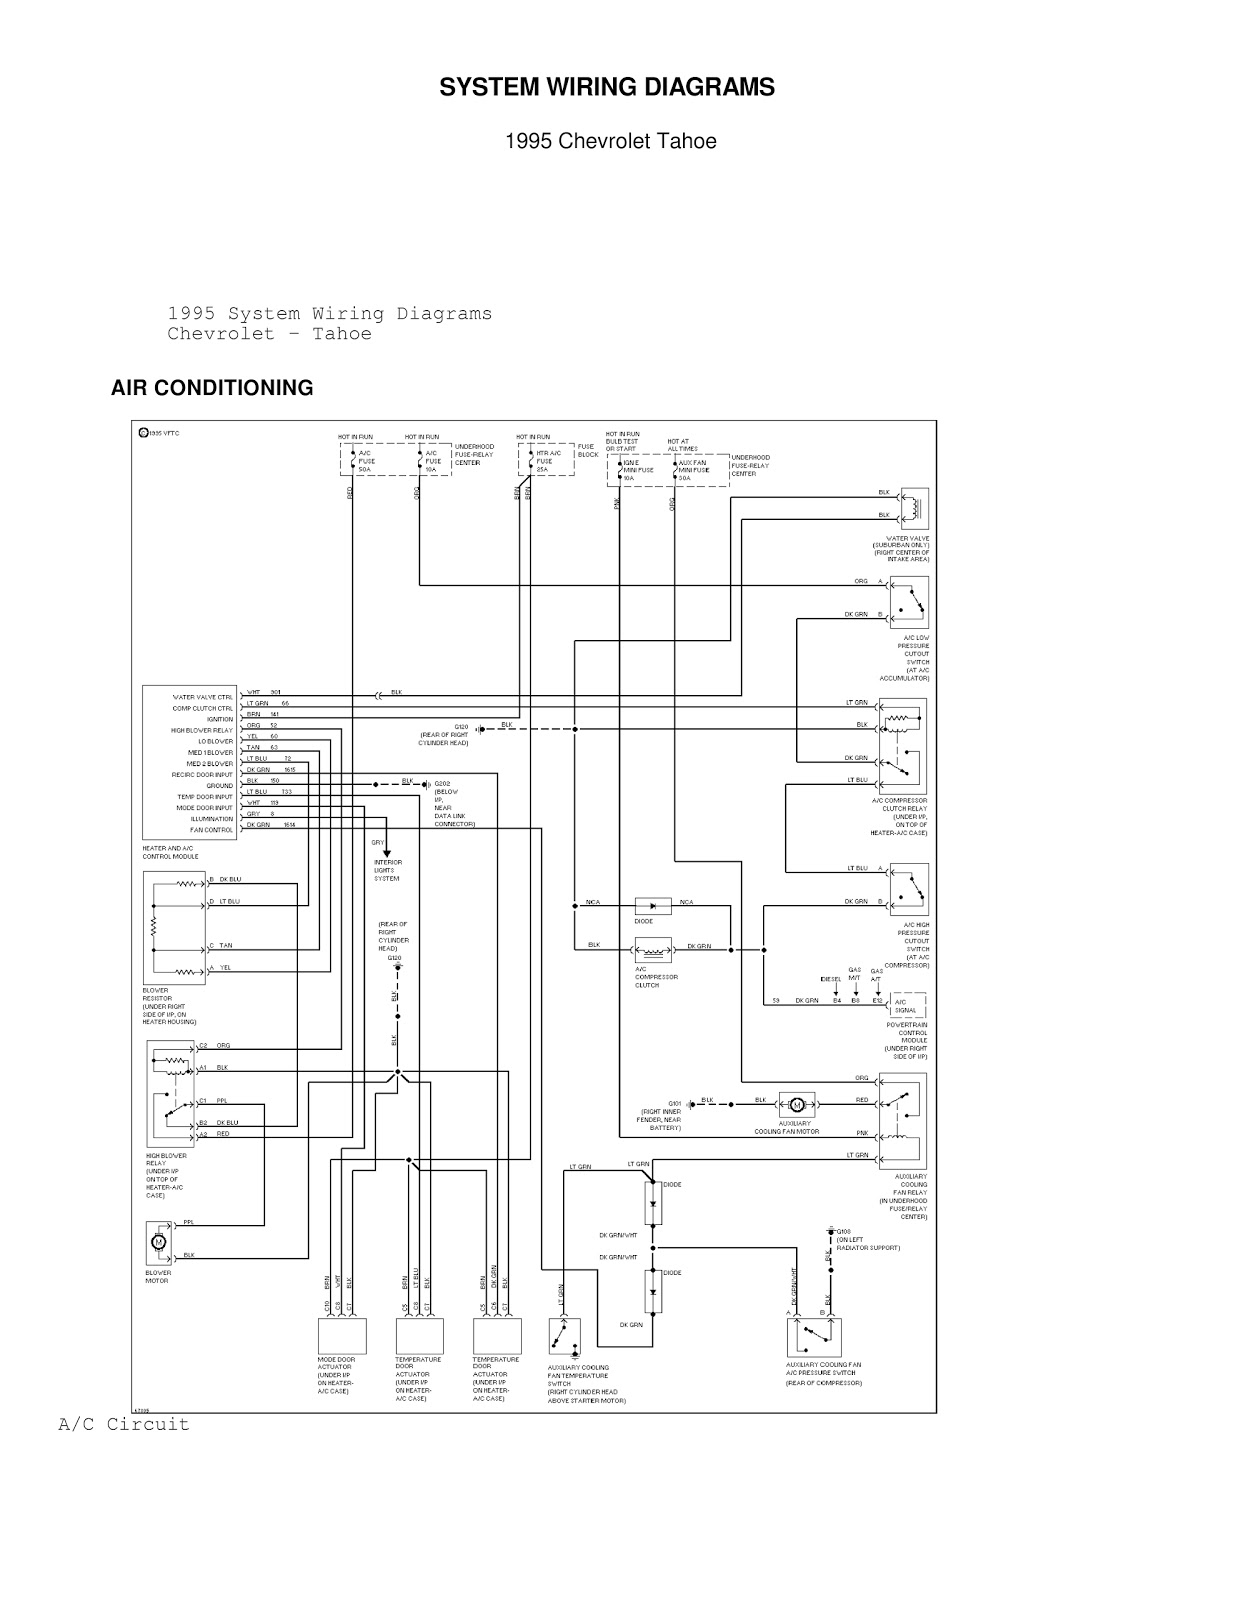 medium resolution of 1995 chevrolet tahoe system wiring diagrams air 1995 chevy suburban wiring diagram on a fuel pump wiring schematics for 95 tahoe